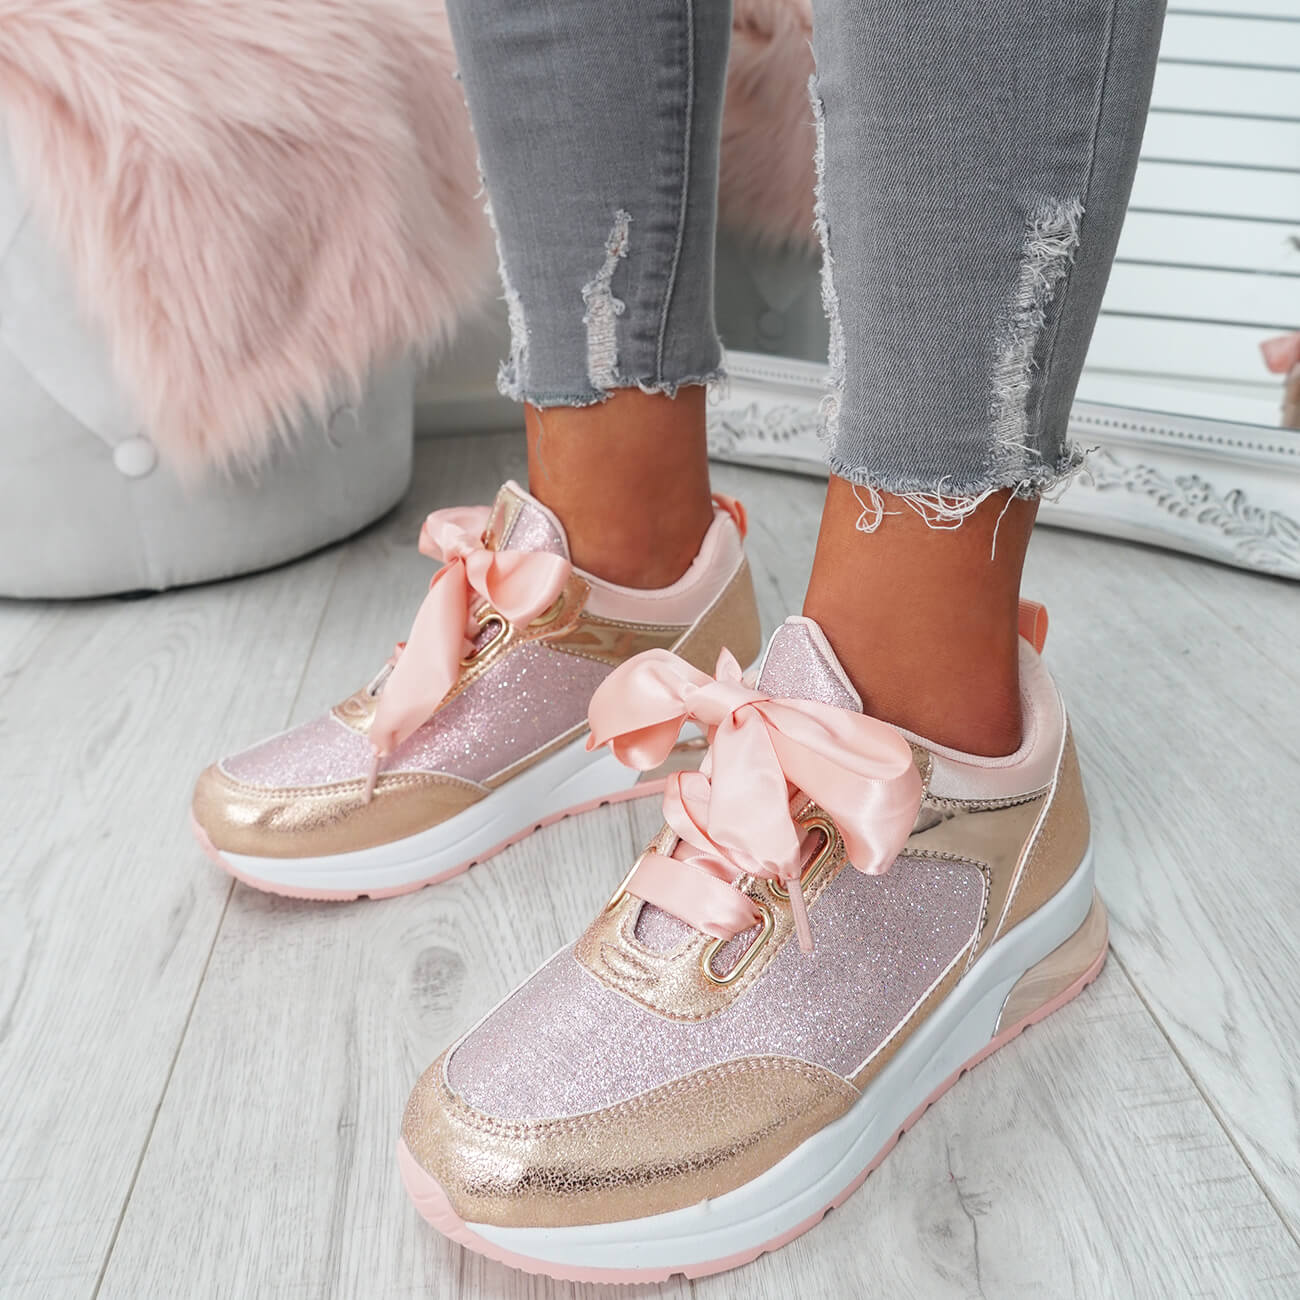 WOMENS-LADIES-RIBBON-TRAINERS-GLITTER-SPARKLE-SNEAKERS-RUNNING-FASHION-SHOES thumbnail 13